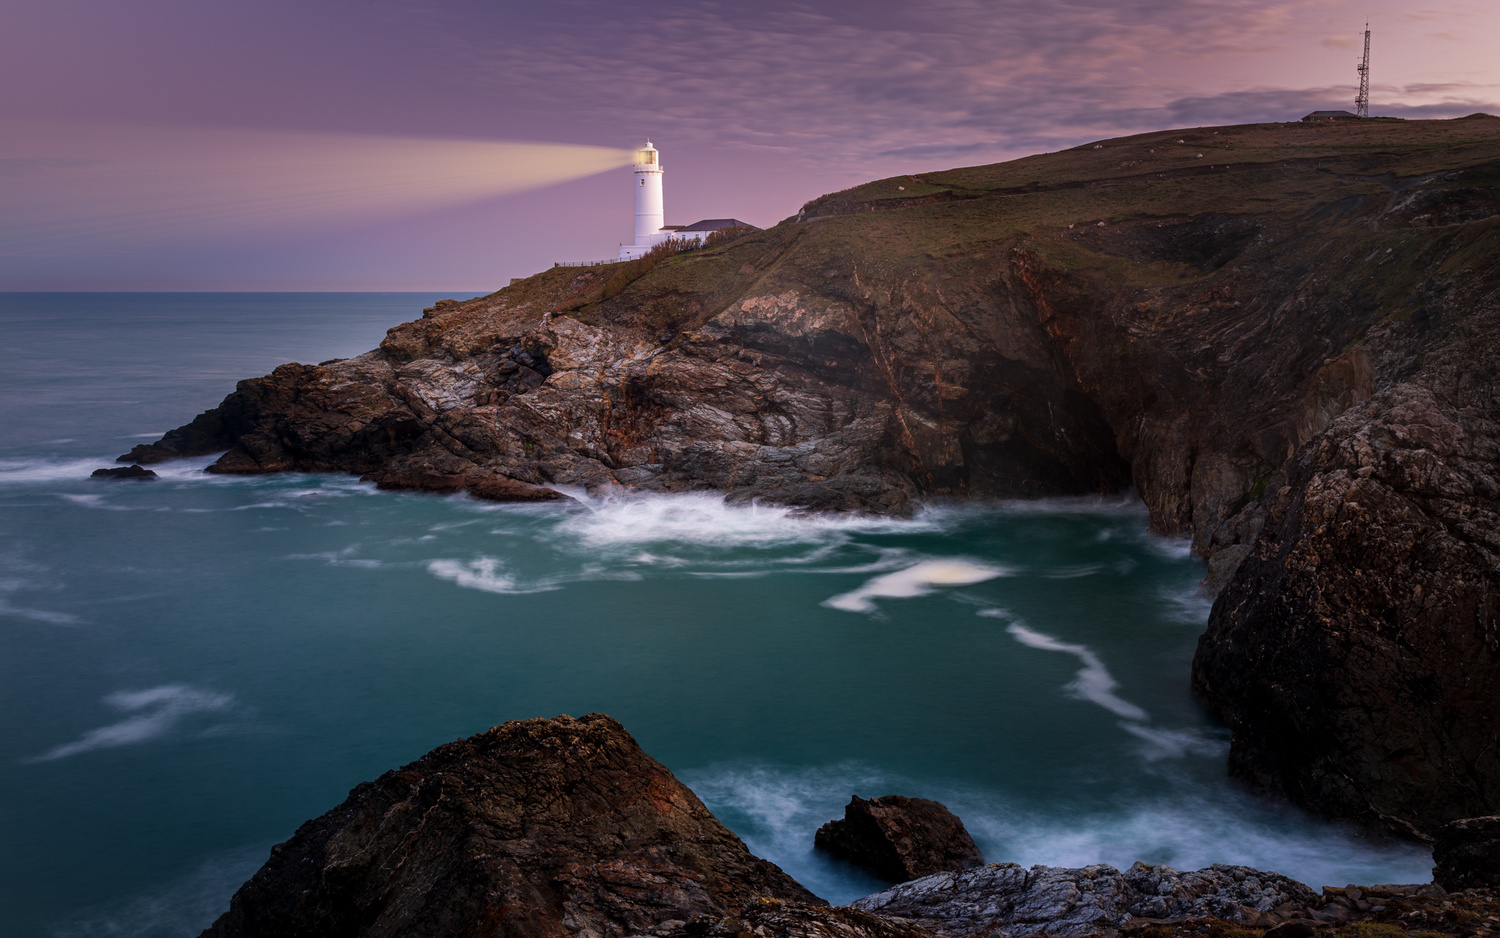 Trevose Light House by Keith Newman